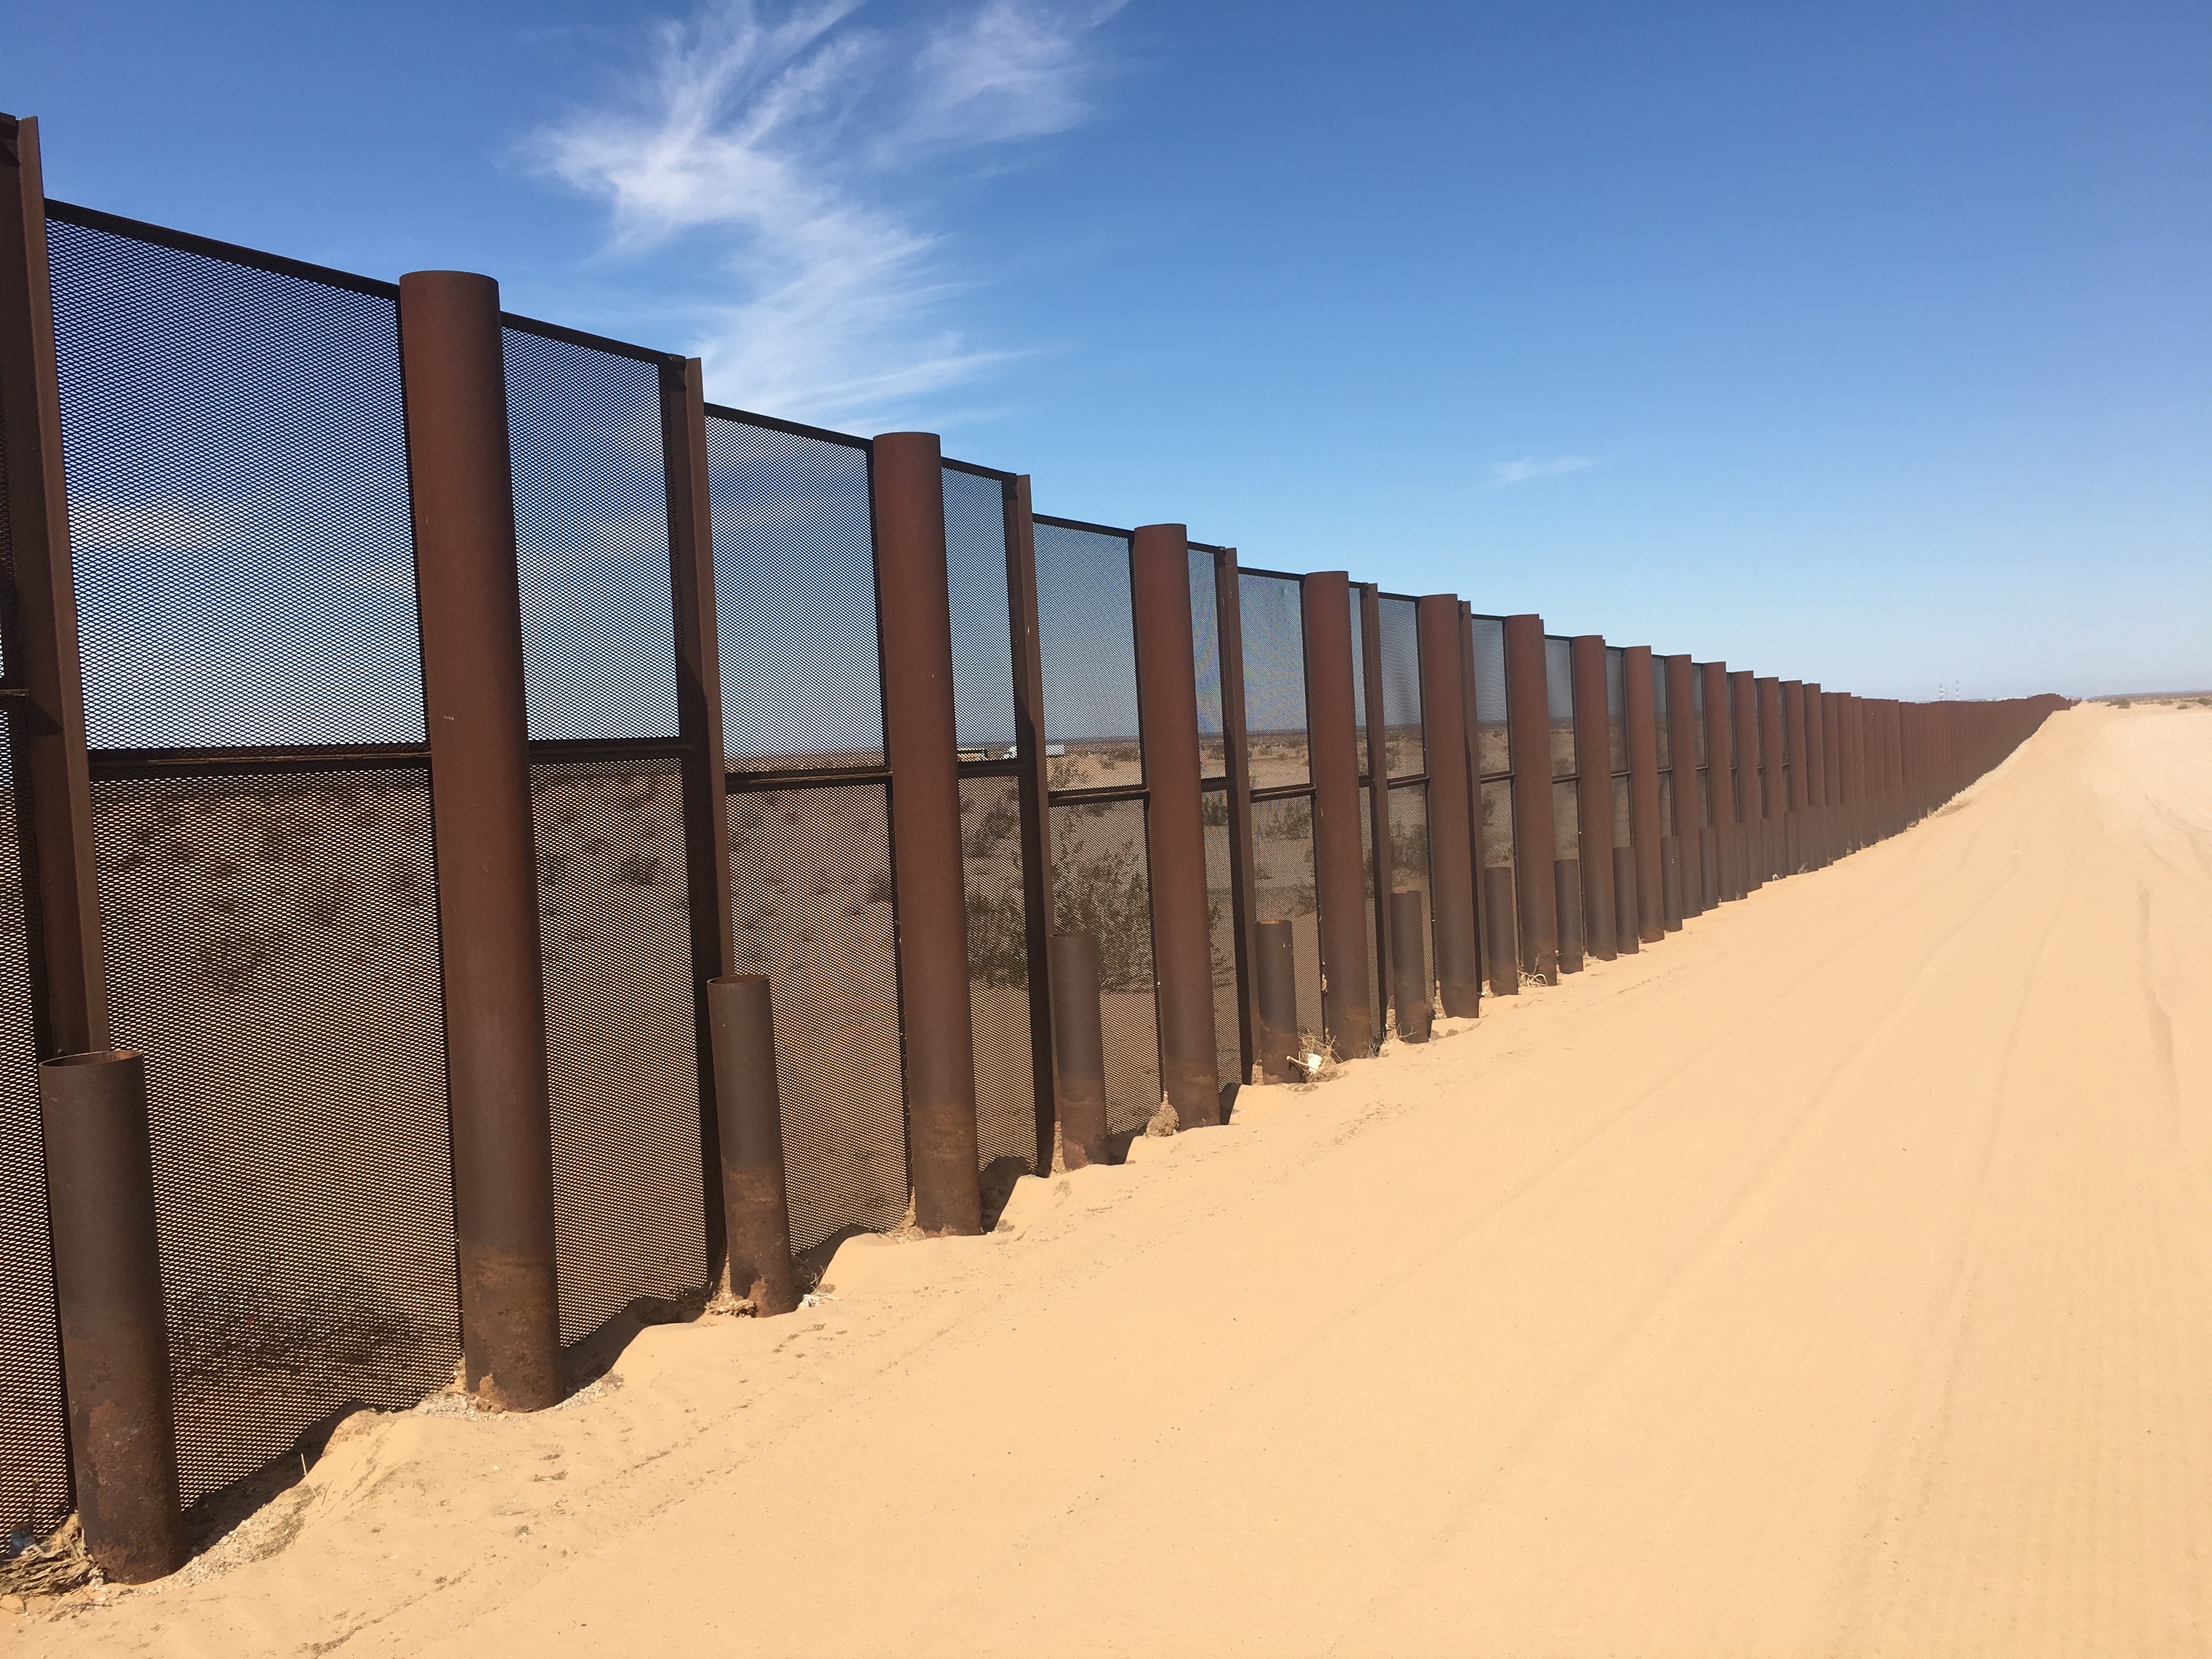 The border fence runs about $6.5 million per mile. It's worked to staunch the flow of illegal entries by Mexicans but now Yuma is seeing a rise in Central Americans crossing this fence in search of asylum. (Michel Marizco)